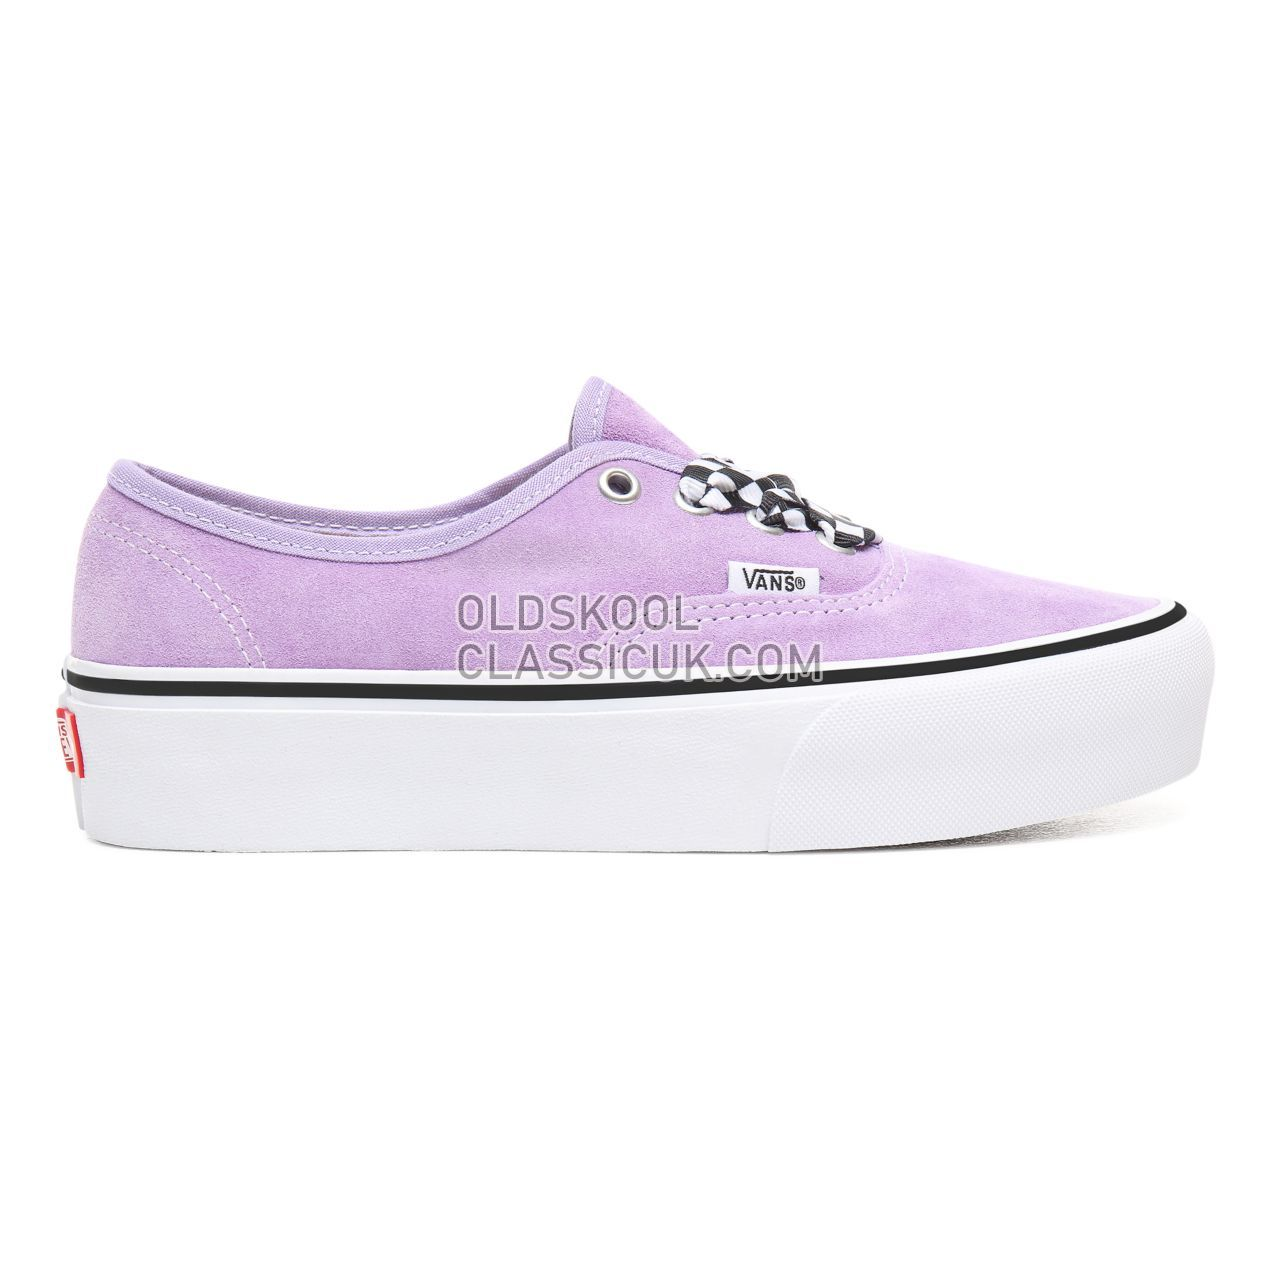 478b97448dde Vans Checkerboard Lace Authentic Platform 2.0 Sneakers Womens (Checkerboard  Lace) Violet Tulip True ...